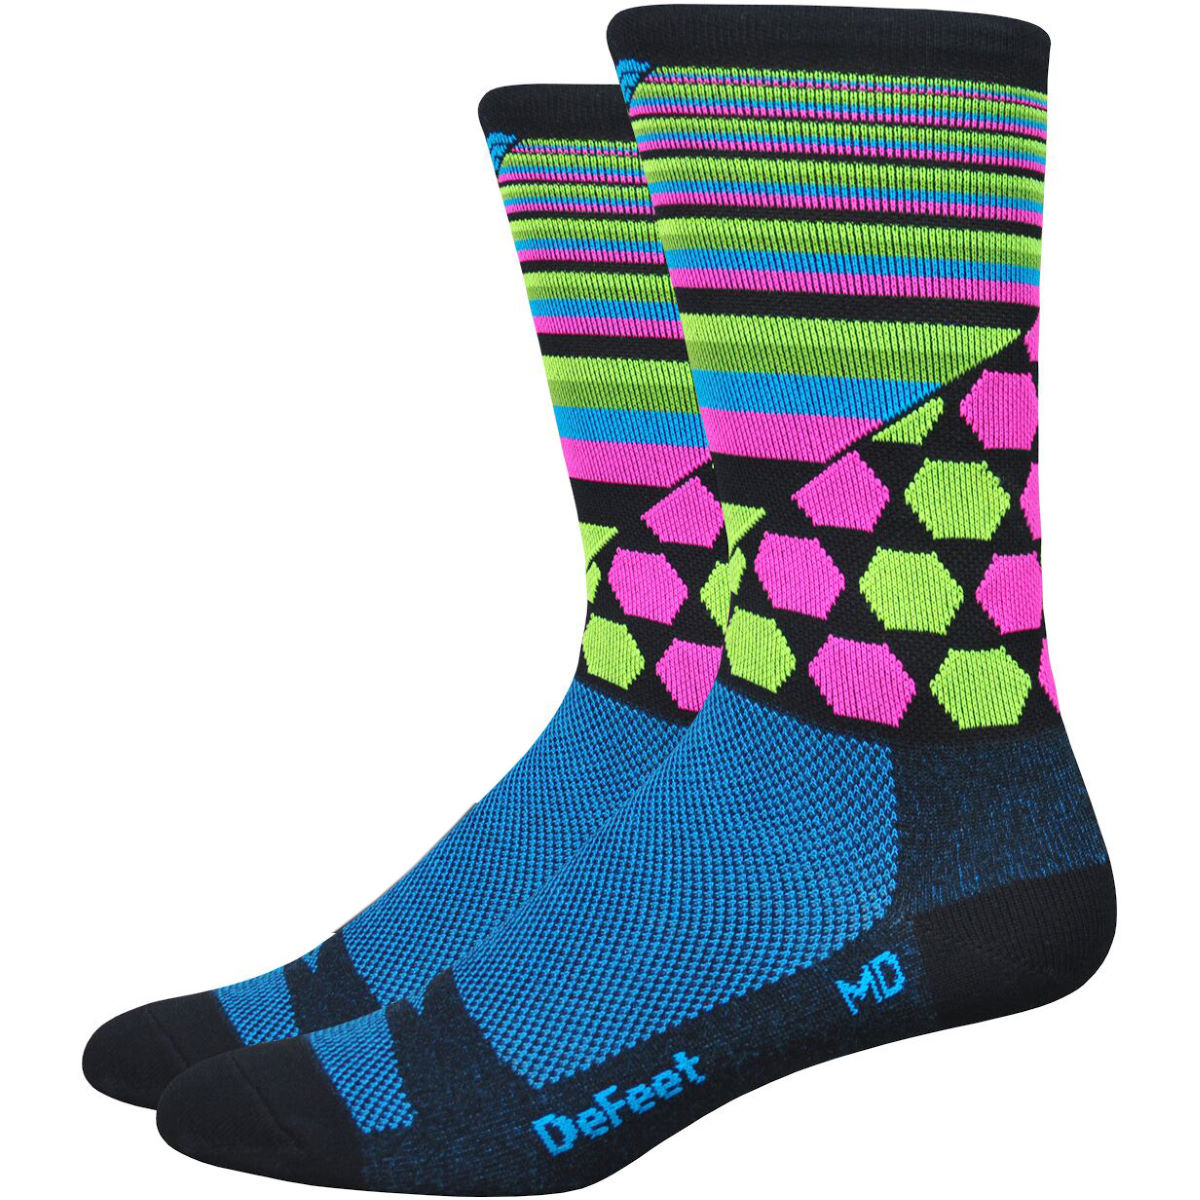 Chaussettes DeFeet Aireator Cosmic (15 cm environ) - M Cosmic